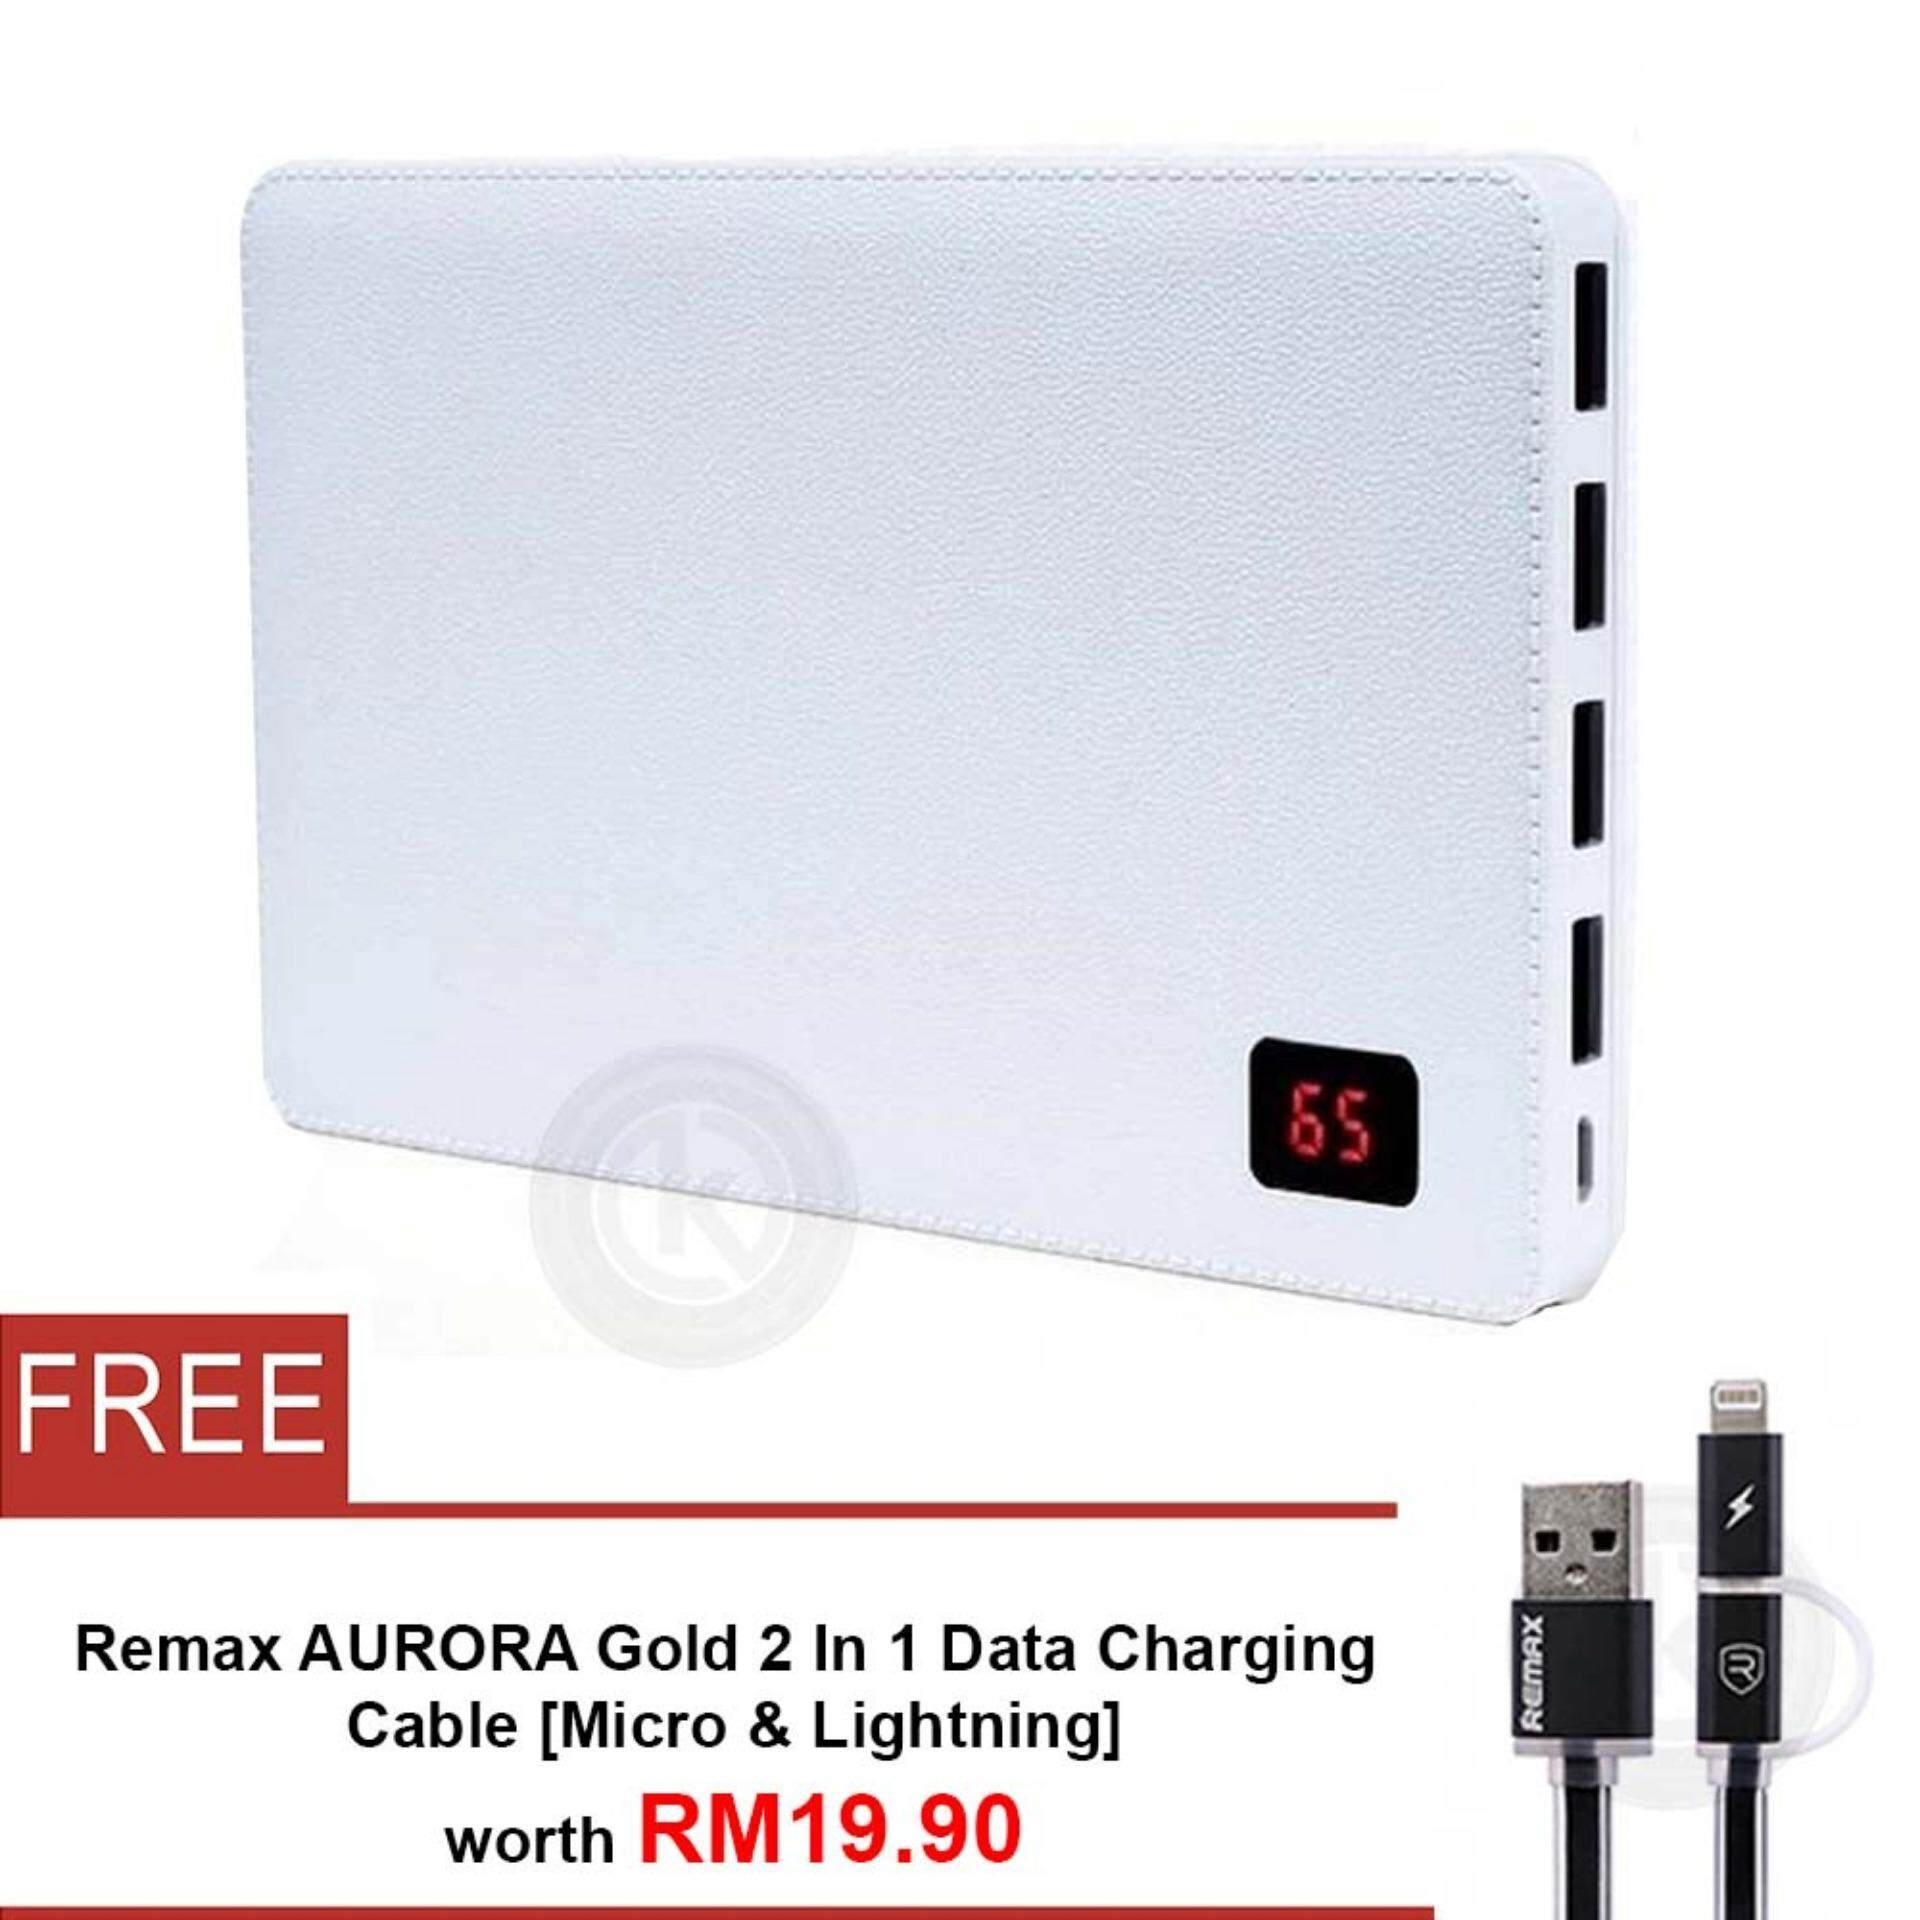 Remax Power Banks For The Best Prices In Malaysia Proda Cable Usb Charger Ppp 7 Notebook 30000mah Bank 4 Port Free Aurora